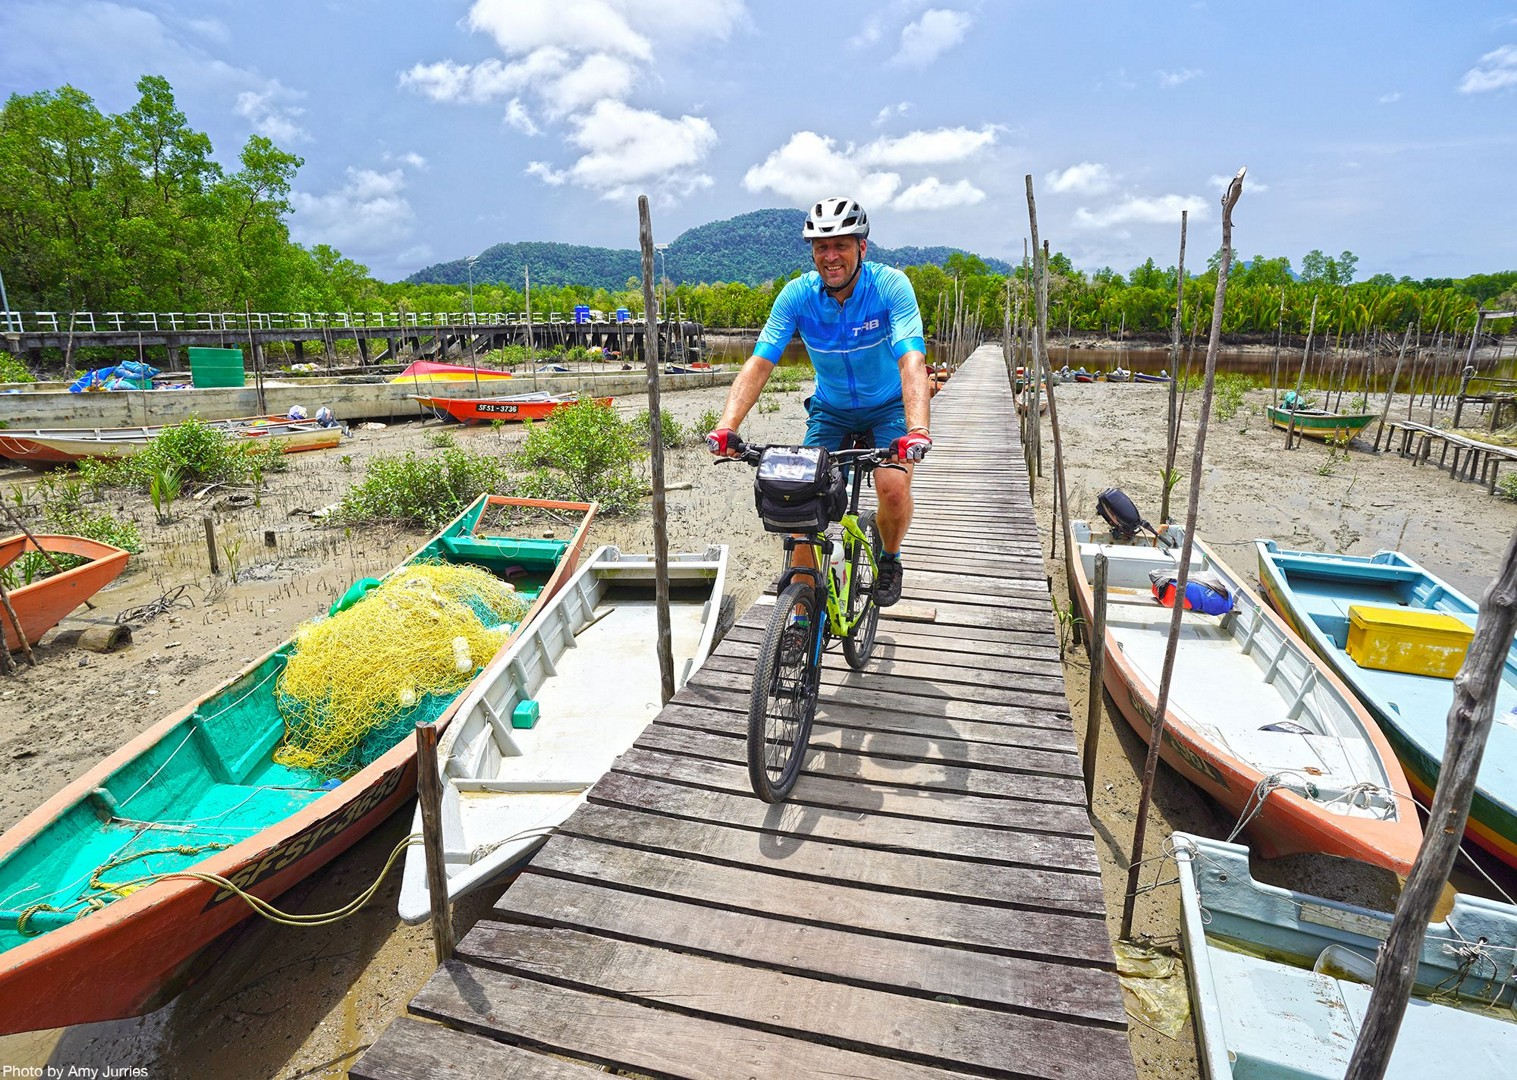 andrewboats.jpg - Borneo - Sarawak Jungle Adventures - Family Cycling